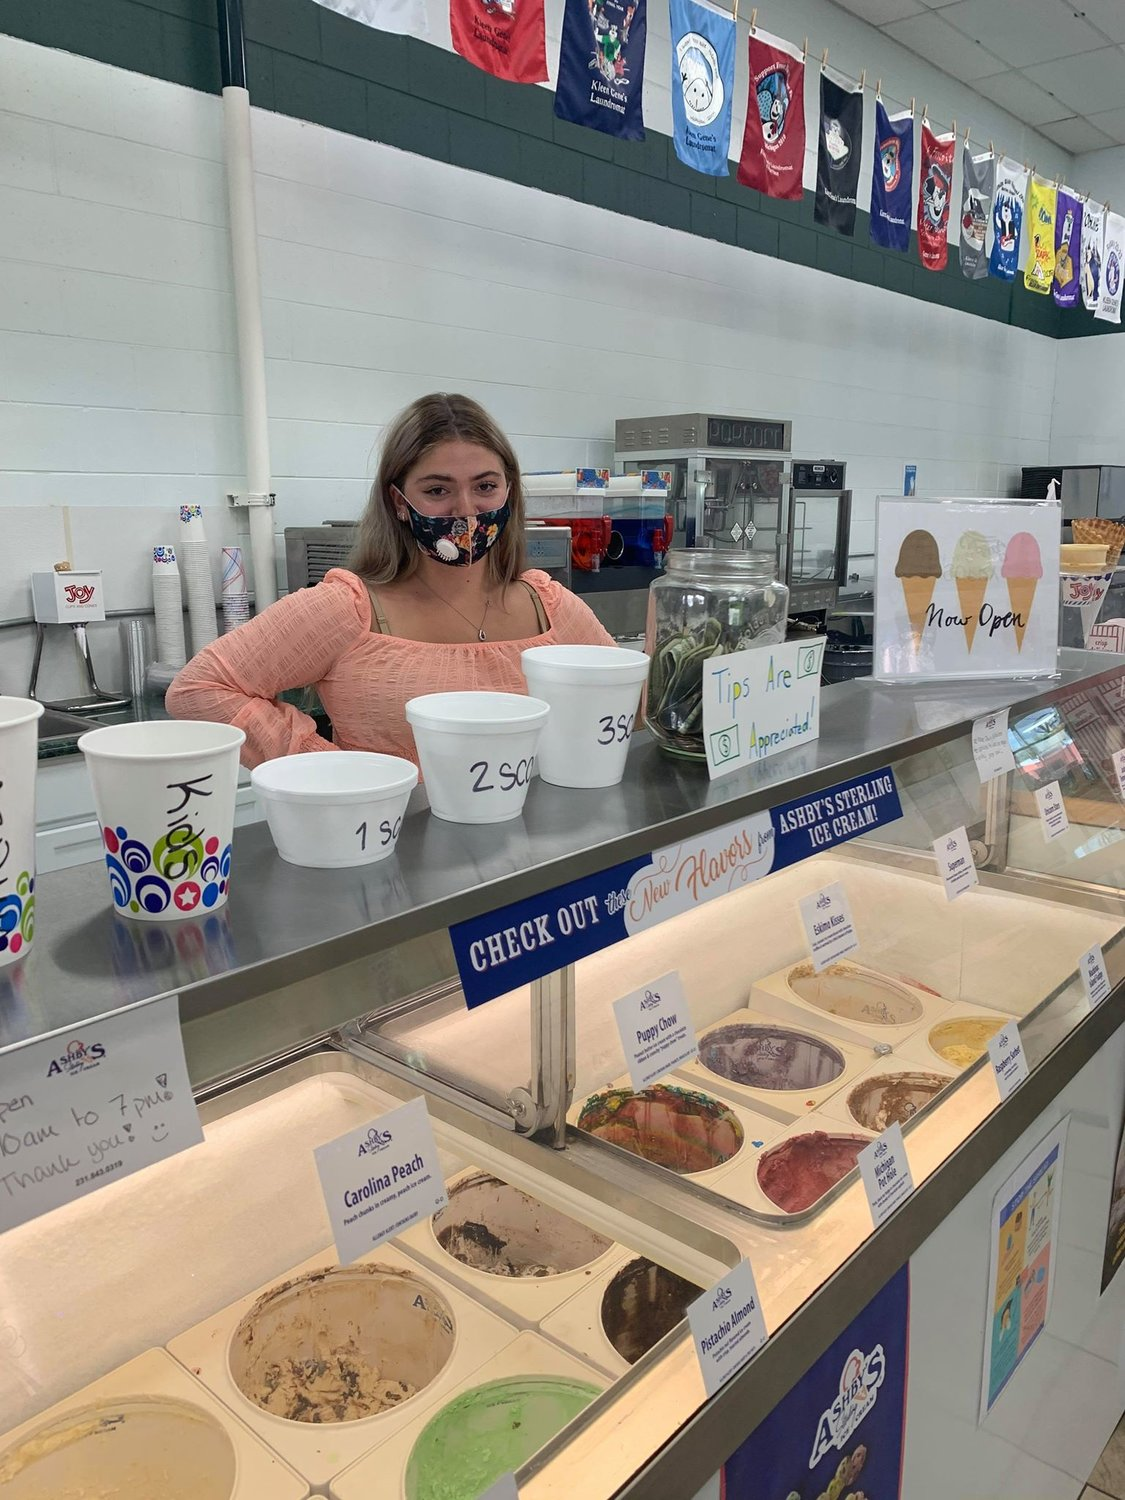 Young entrepreneur Arianna oversees the ice cream and snack bar at her family's newly acquired business, Kleen Gene's Laundromat in Harrison.